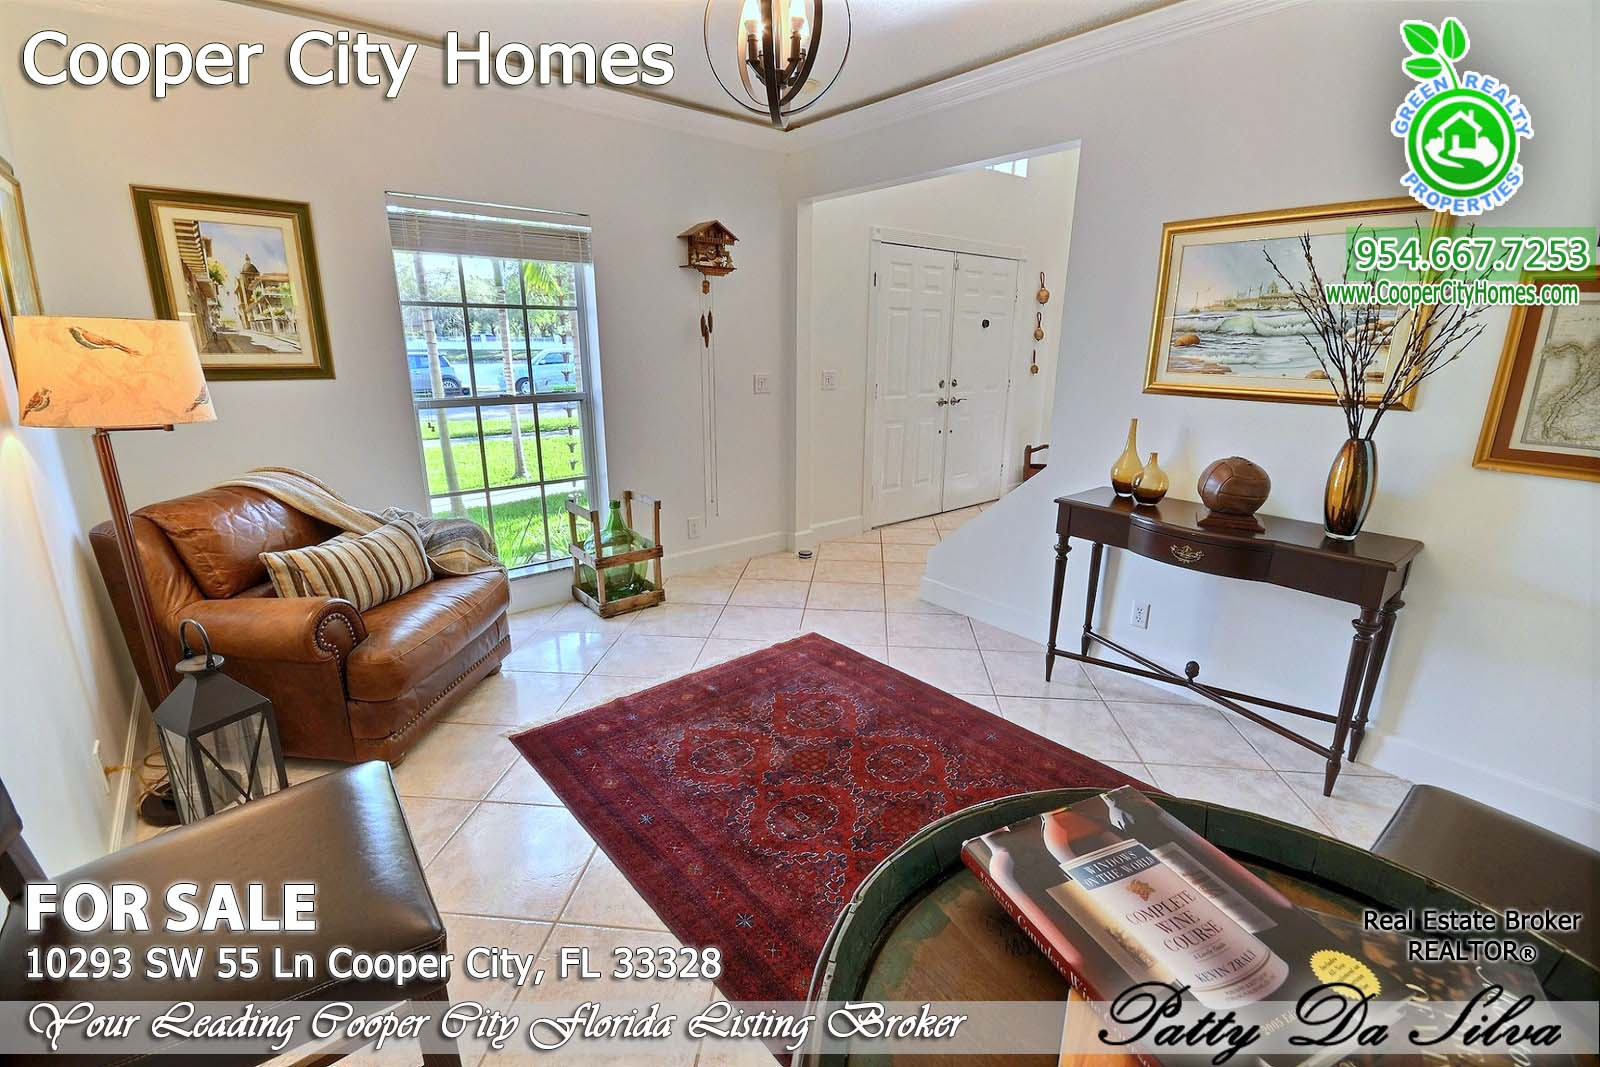 10293 - Cooper City Homes For Sale (23)